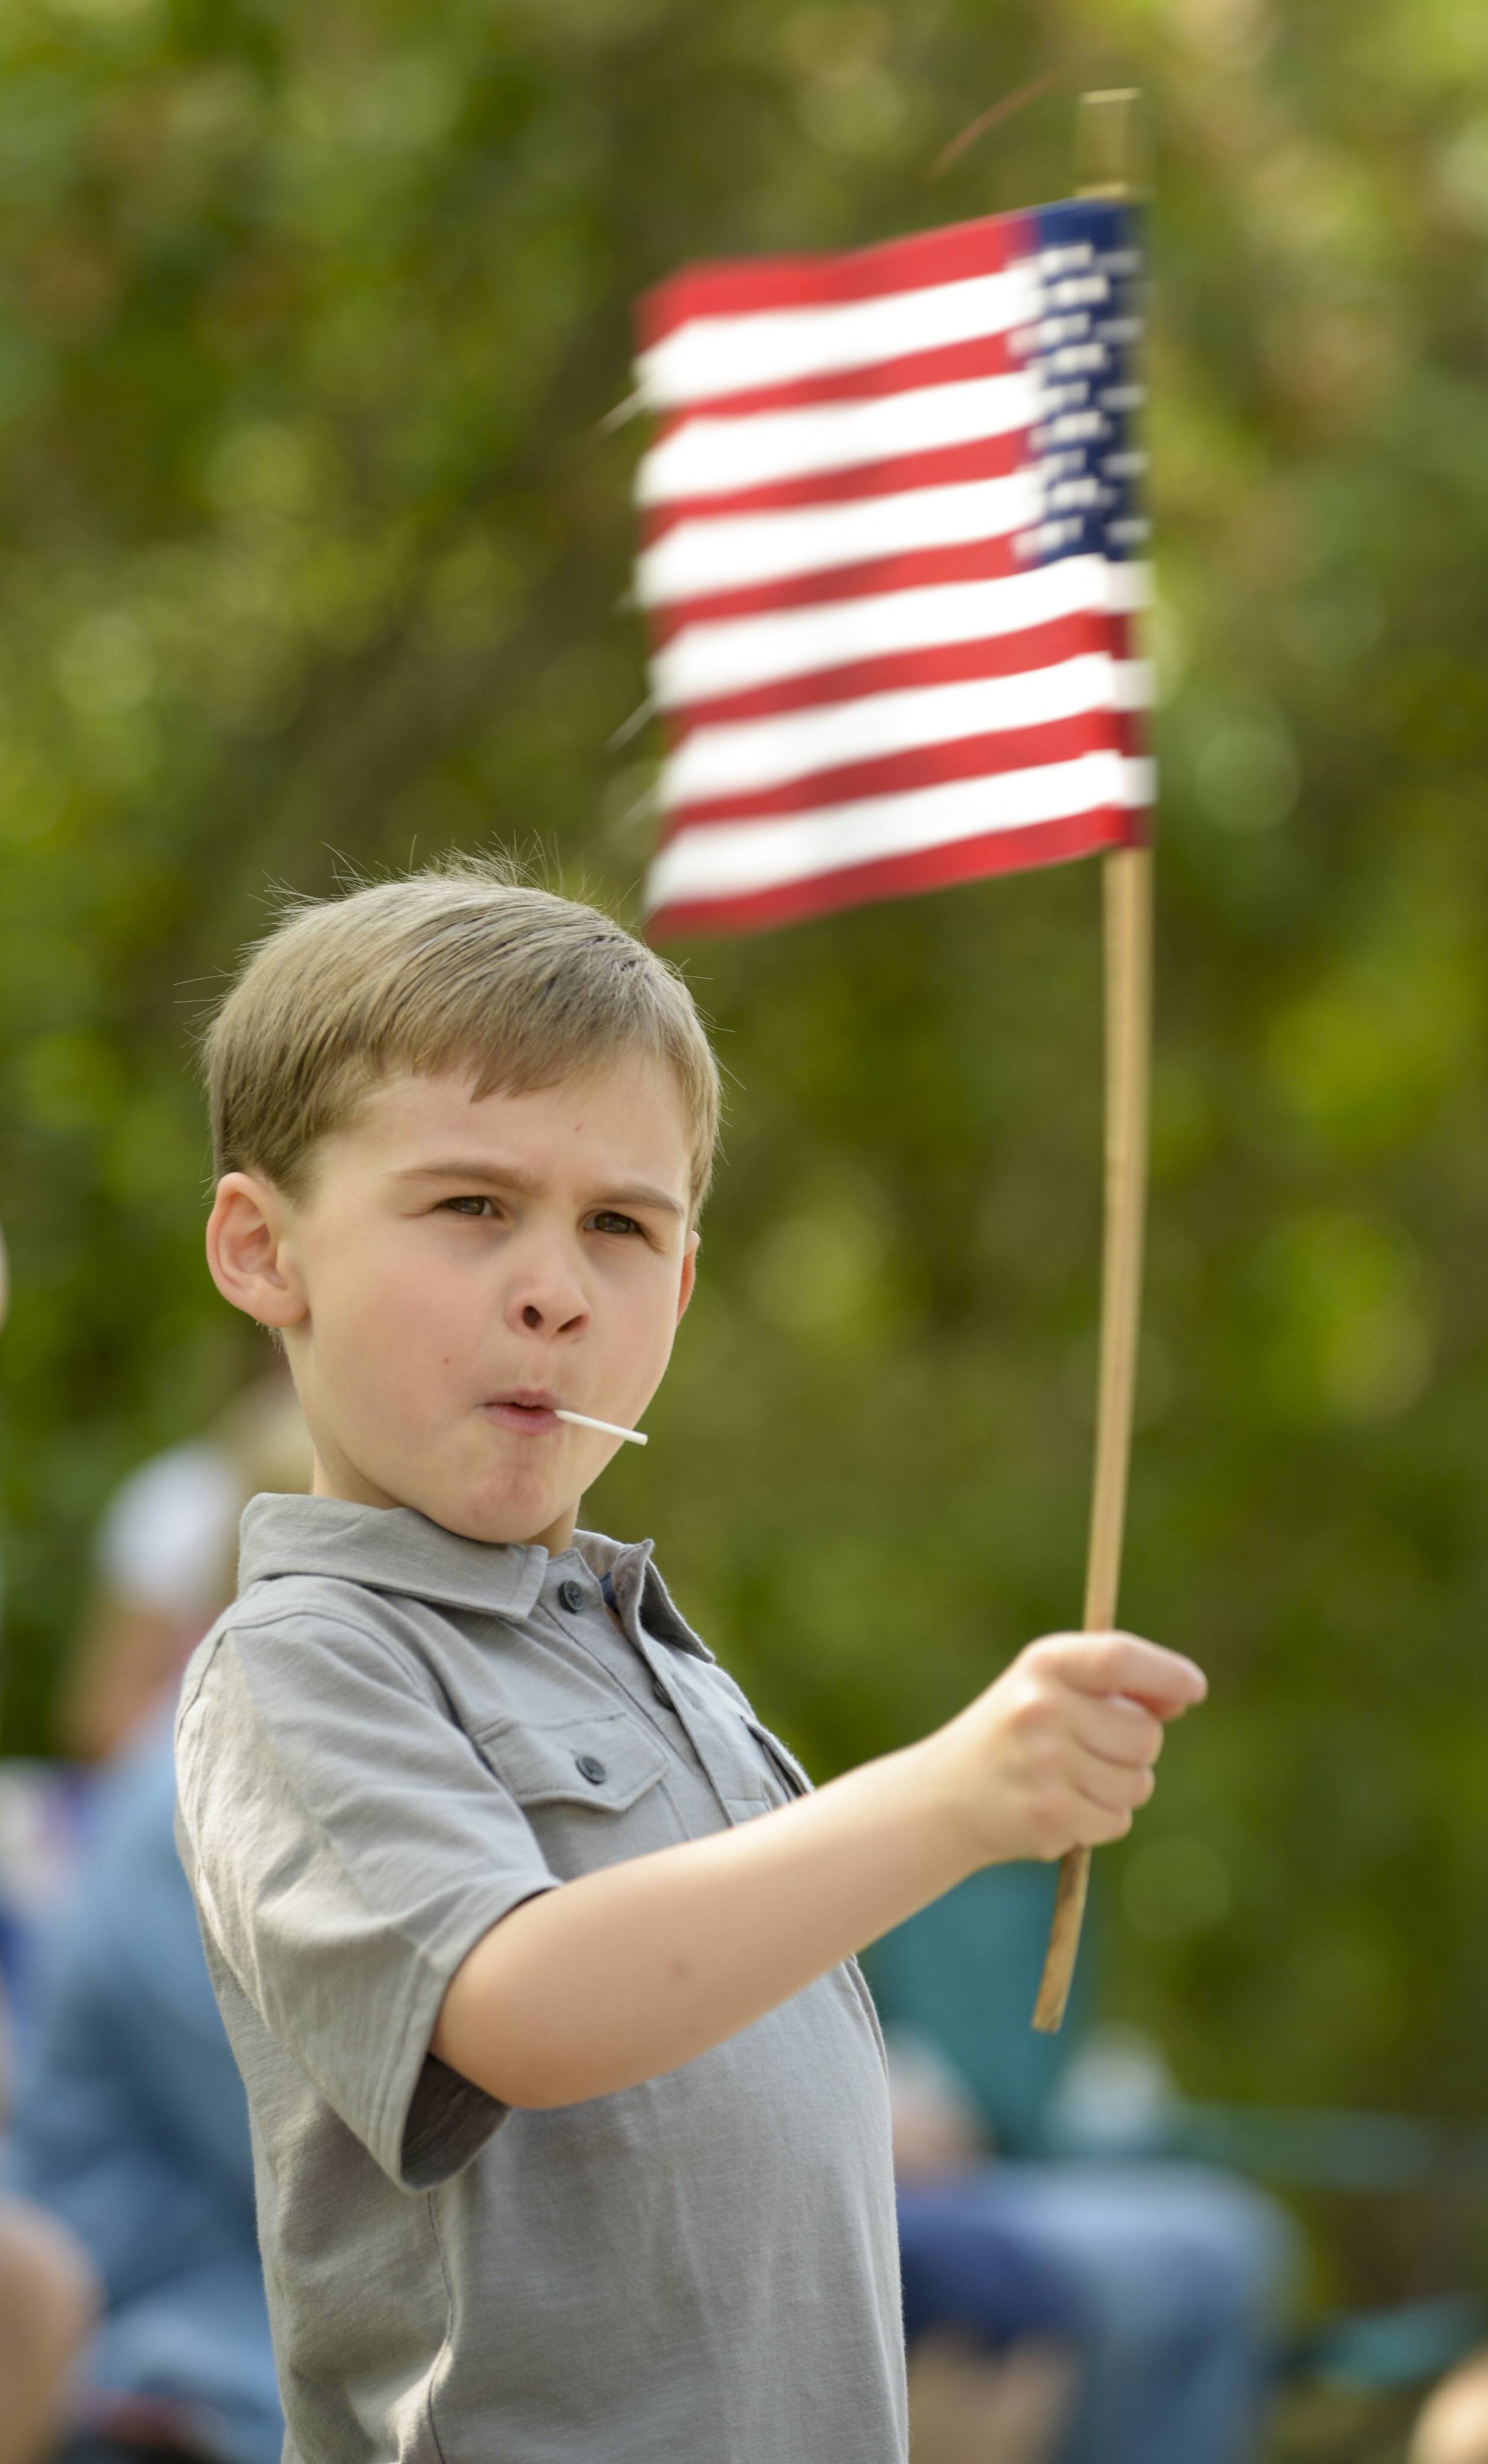 Eli Adams, 6, of Wheaton, shows his patriotism during the city's Memorial Day parade.